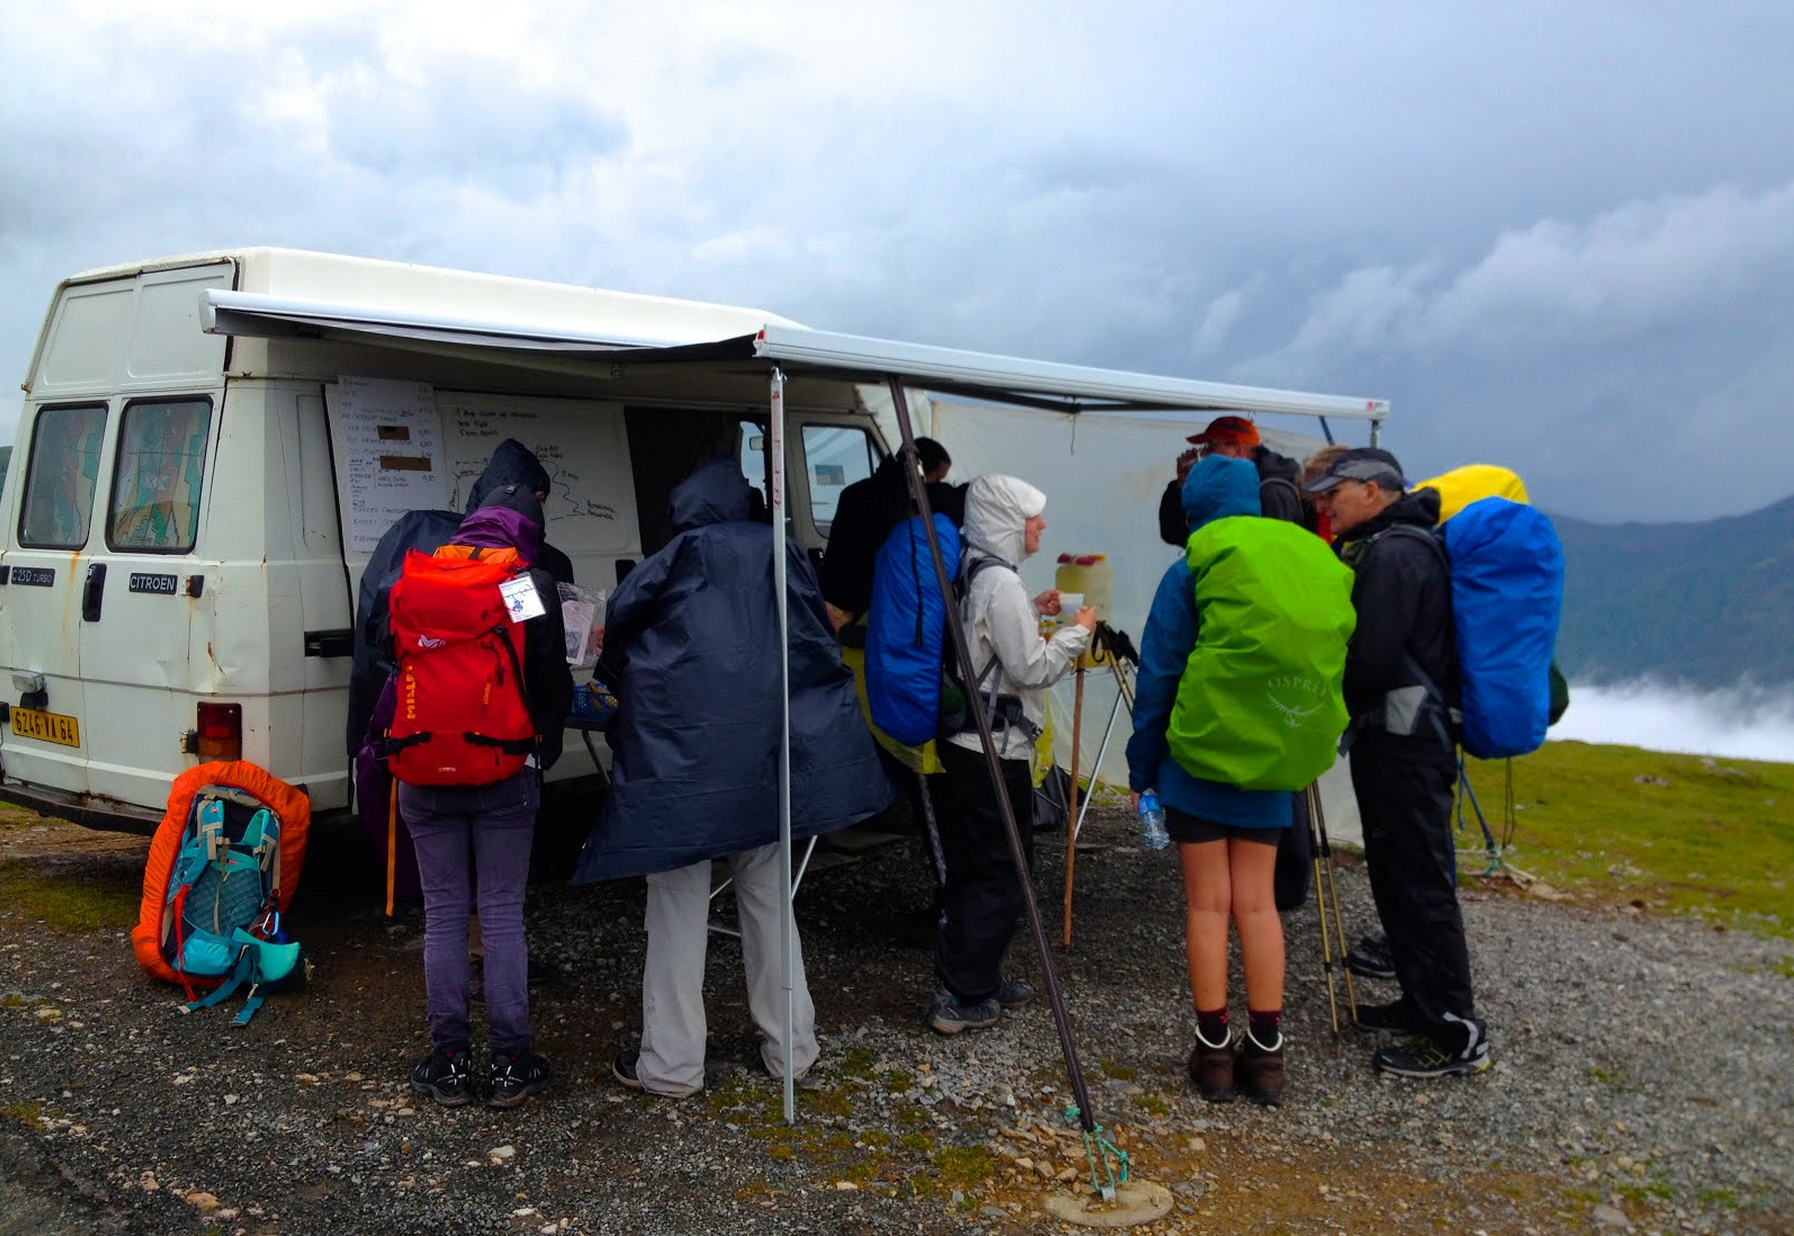 Near the top of the mountain, people huddled in the cold, crisp wind at a food truck. The driver makes the journey 9 months out of the year to sell coffee, soda, fruit, yogurt, and boiled eggs to weary pilgrims.